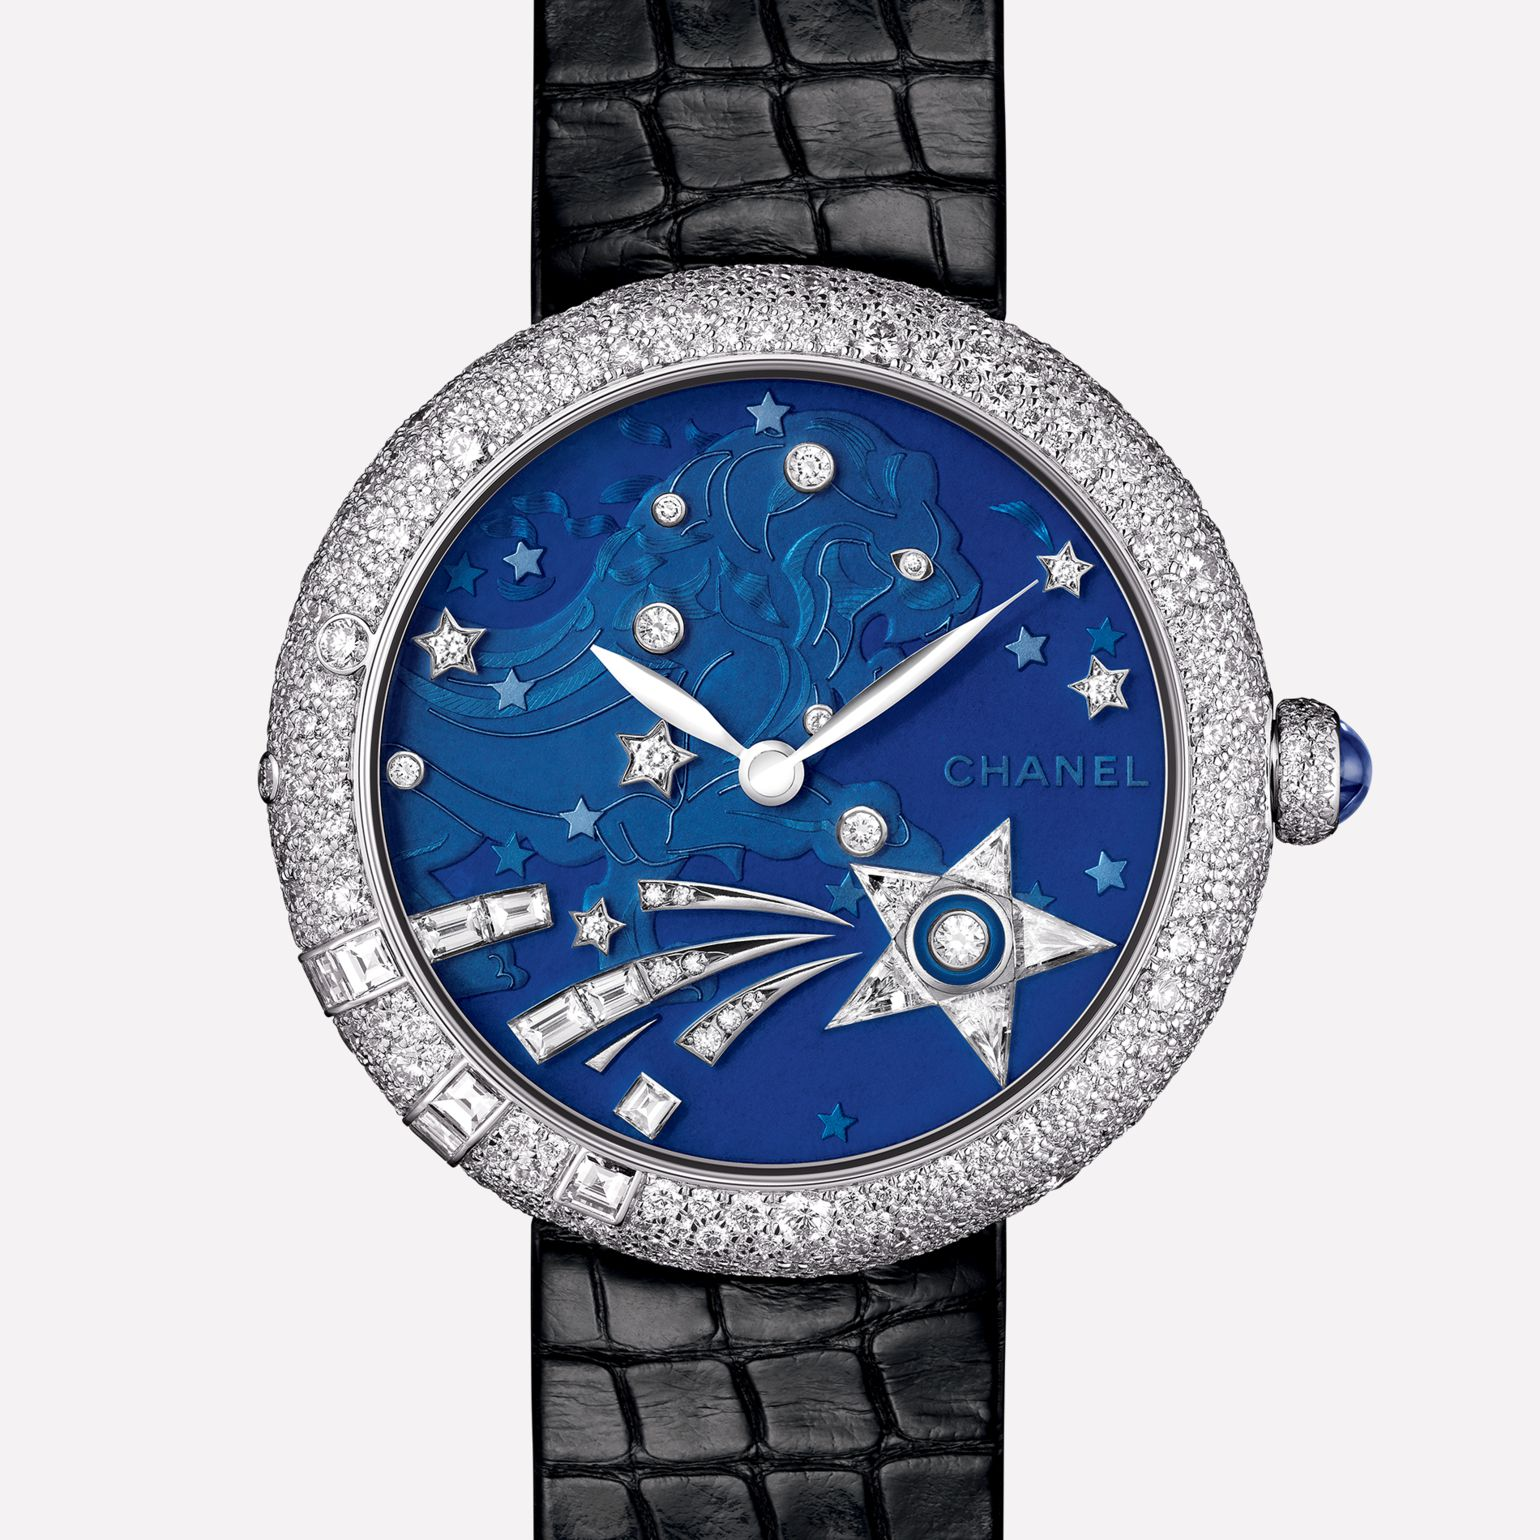 Mademoiselle Privé Watch La Constellation du Lion jewelry - Grand Feu blue translucent enamel dial and diamonds